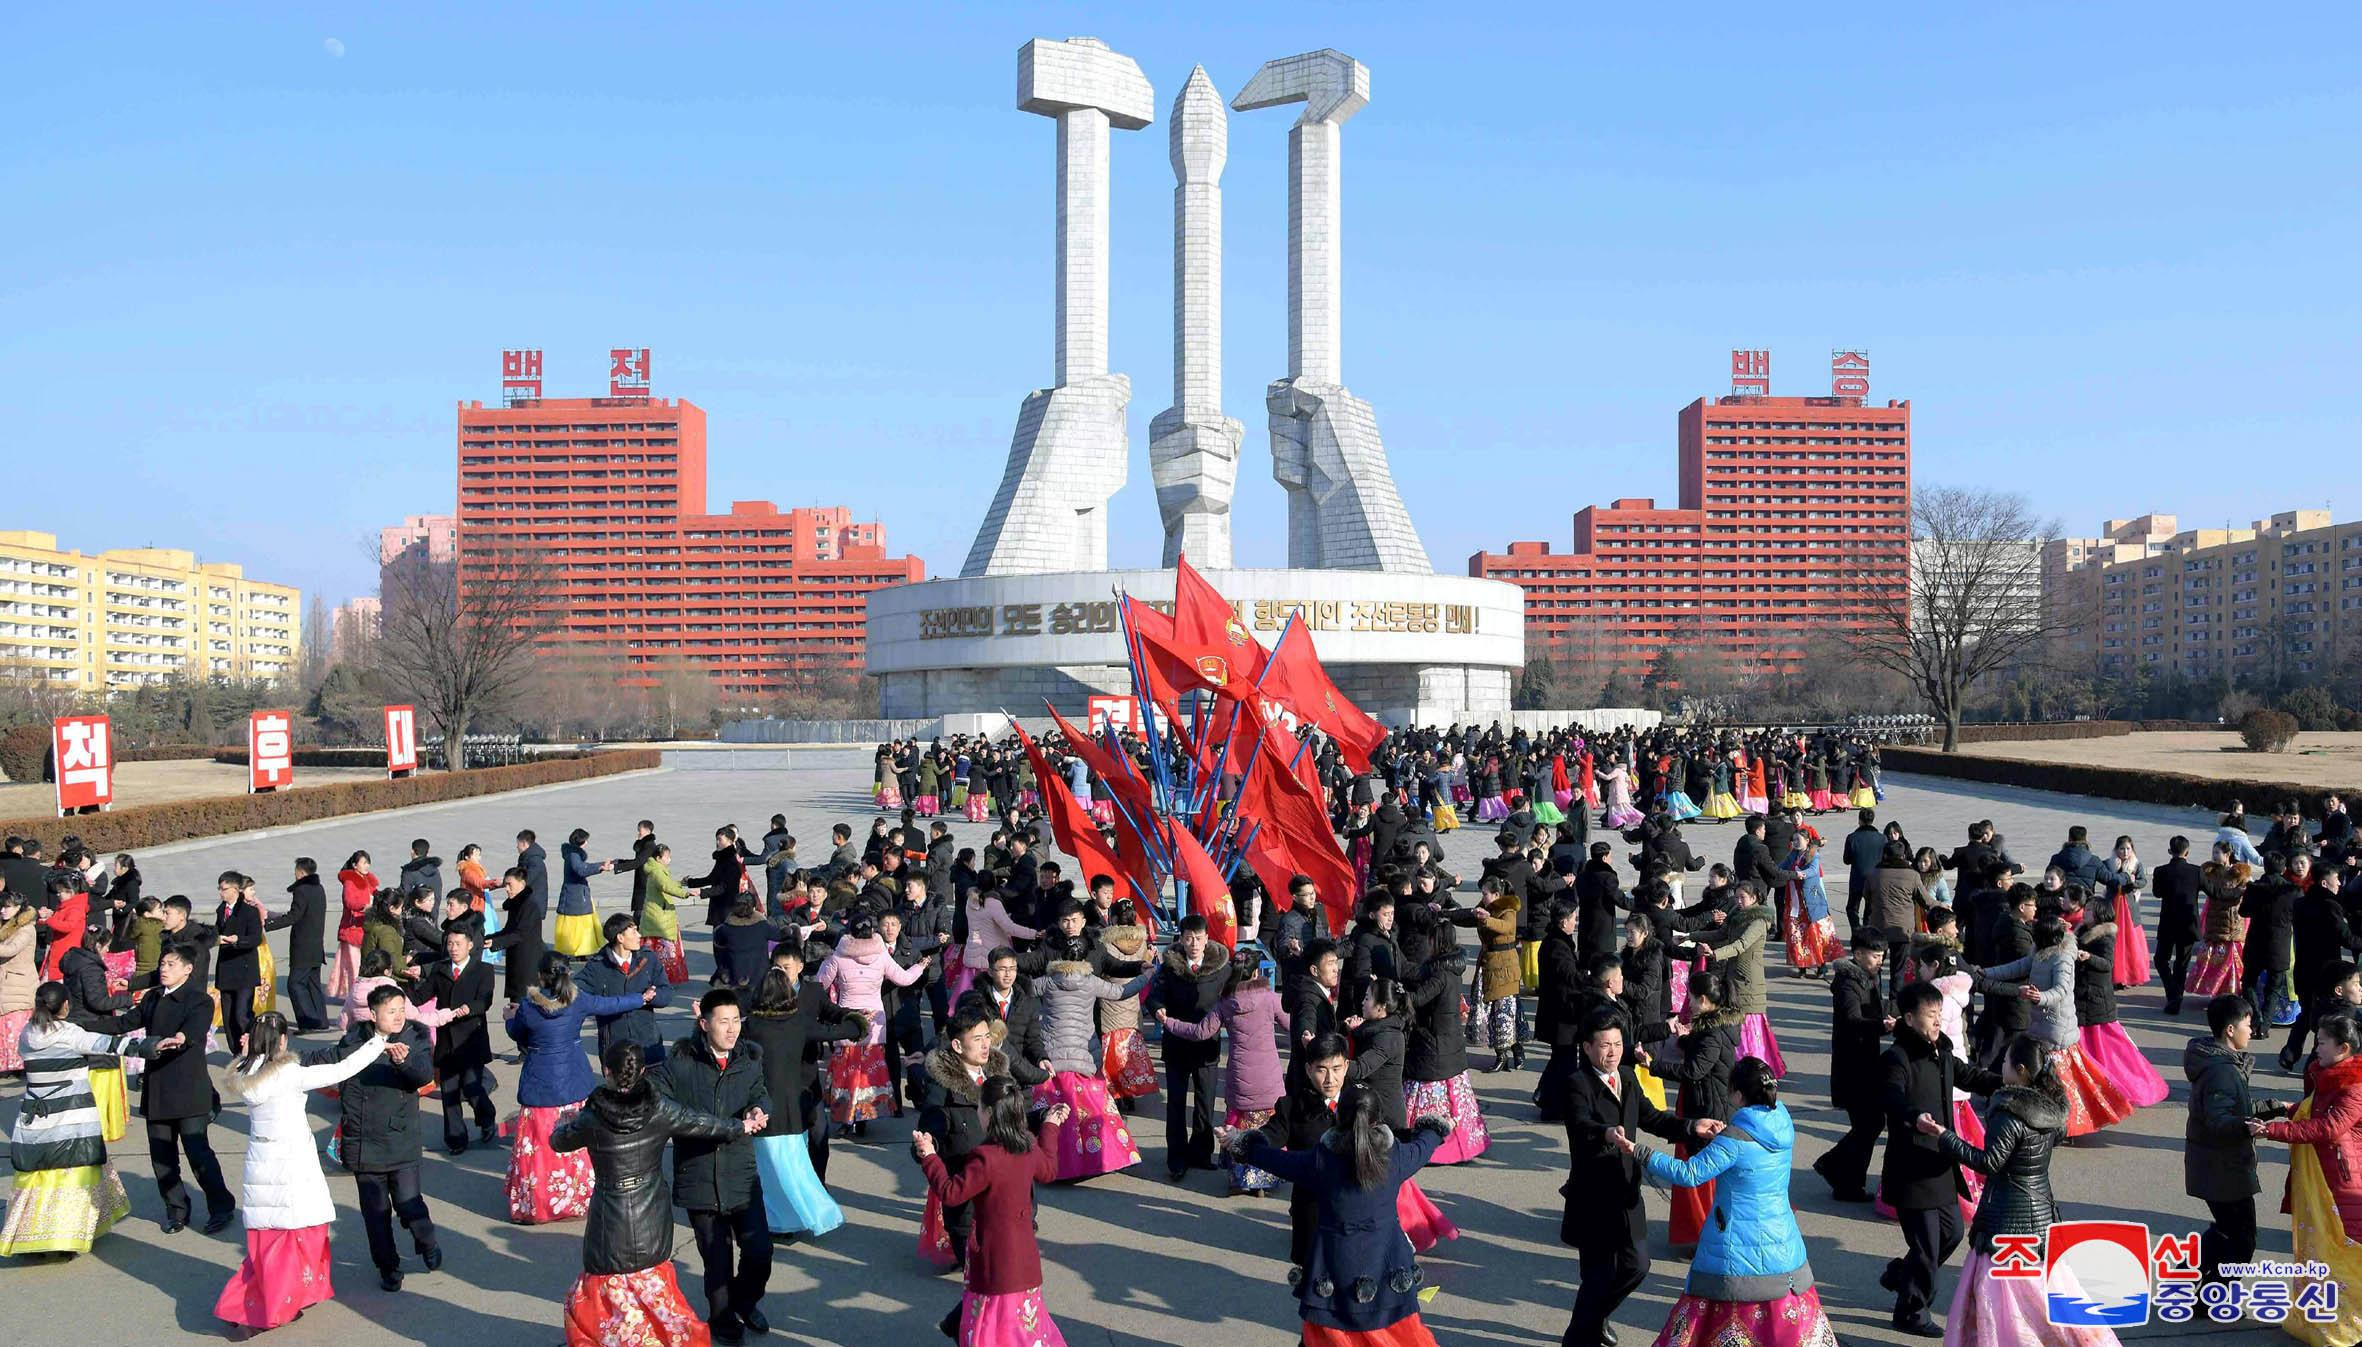 Dancing parties of youth and students take place to celebrate the Day of the Shining Star, the birth anniversary of former North Korean leader Kim Jong Il in Pyongyang, North Korea in this February 16, 2019 KCNA Photo.     KCNA via REUTERS    ATTENTION EDITORS - THIS IMAGE WAS PROVIDED BY A THIRD PARTY. REUTERS IS UNABLE TO INDEPENDENTLY VERIFY THIS IMAGE. NO THIRD PARTY SALES. SOUTH KOREA OUT.